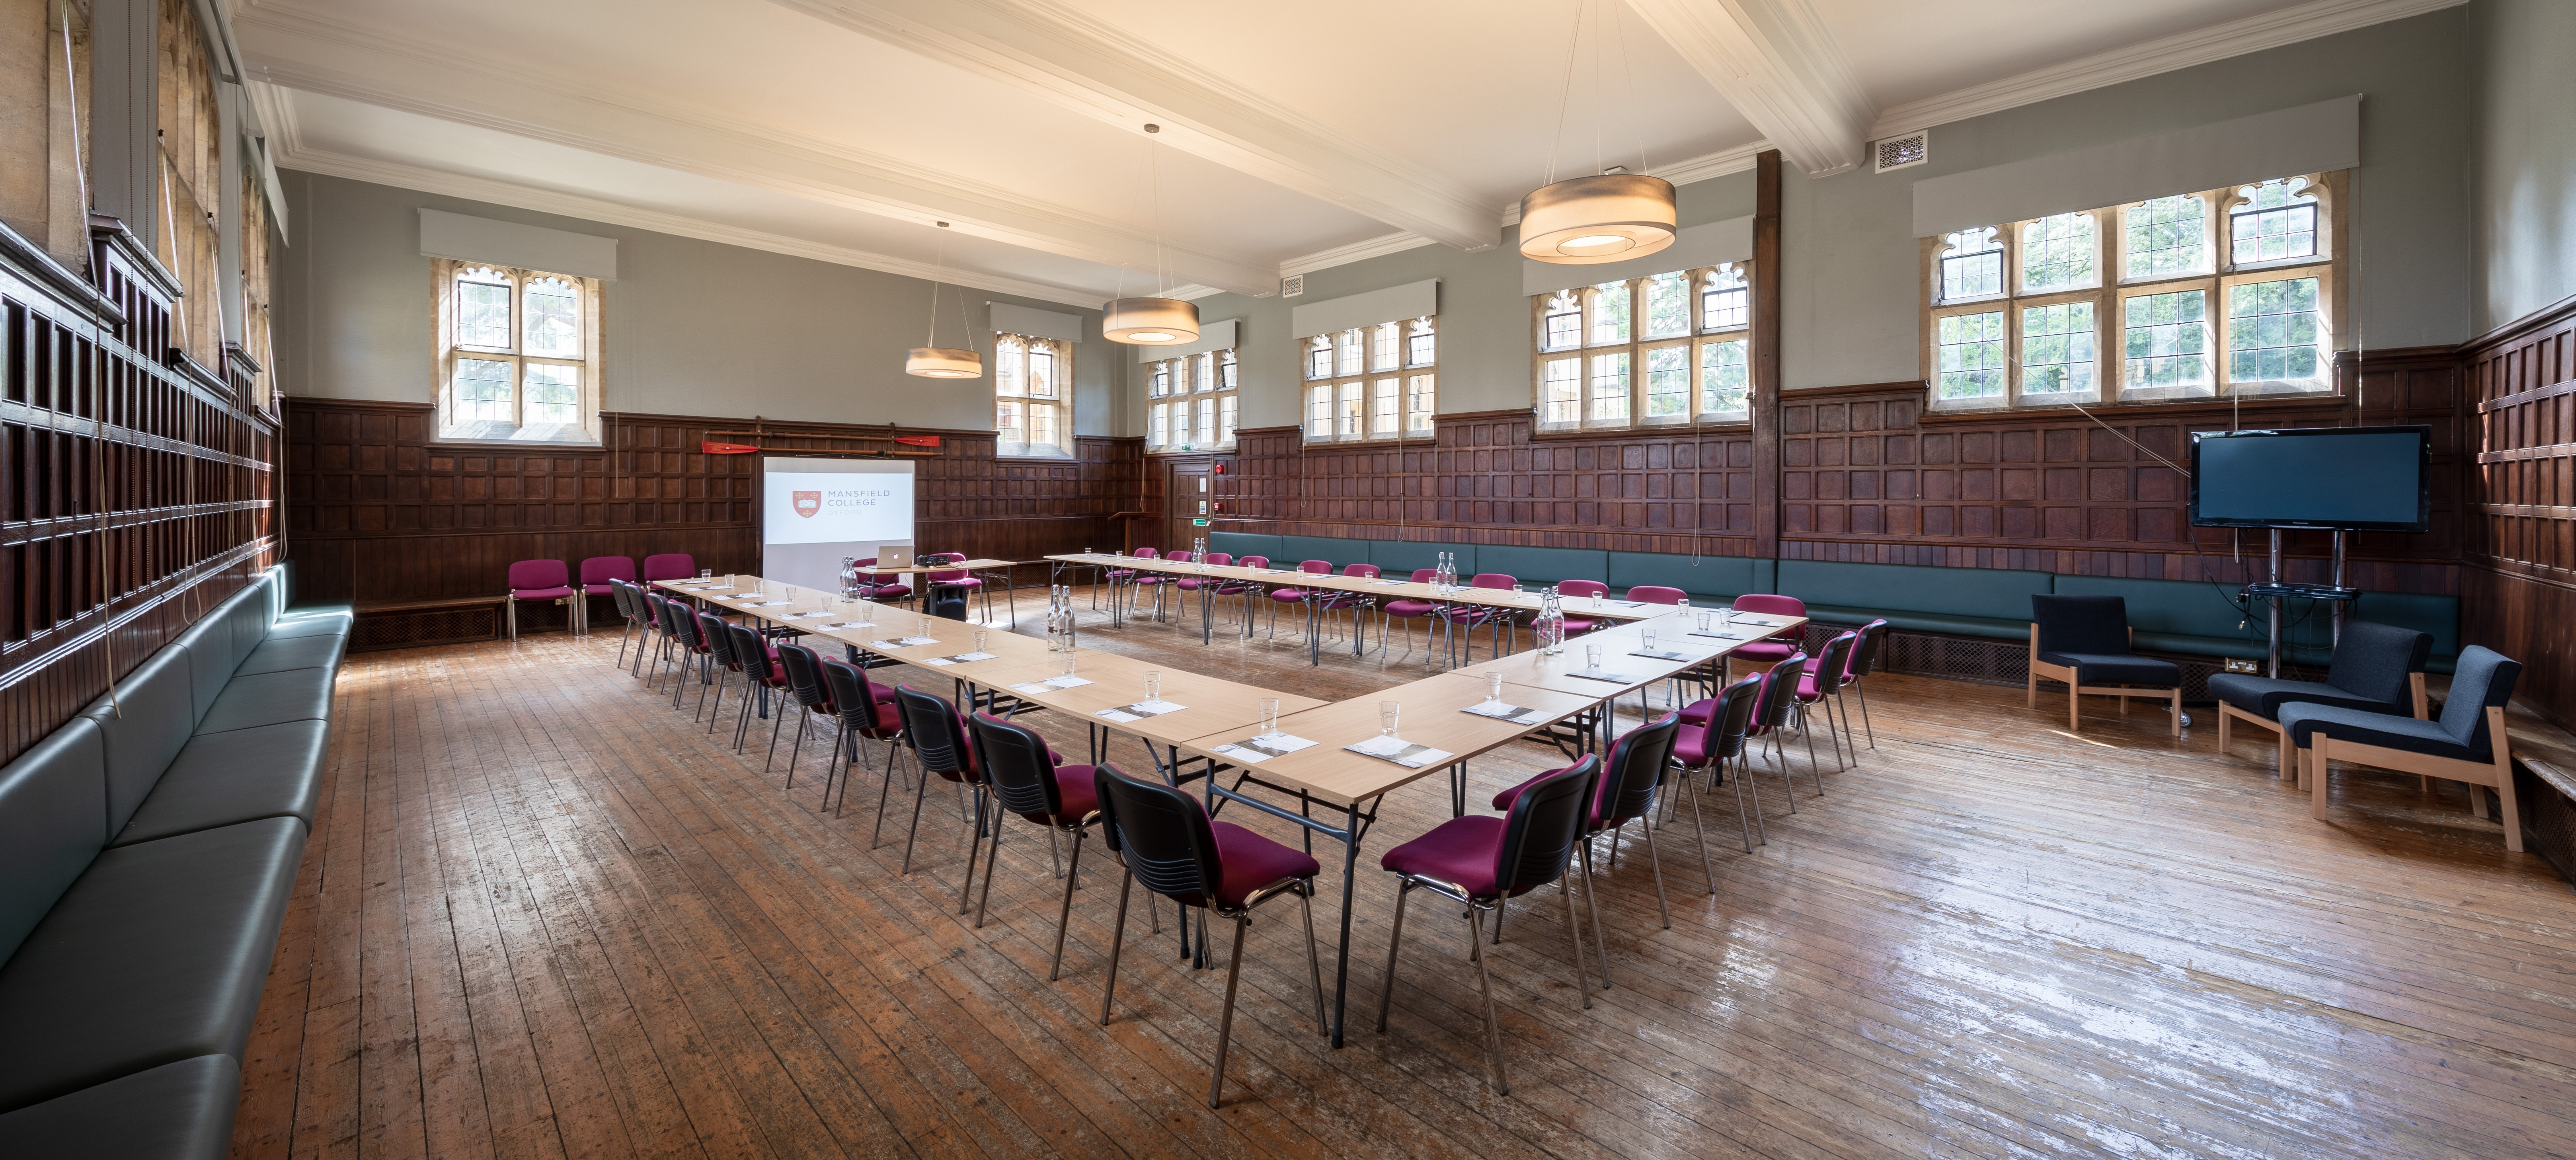 The JCR at Mansfield College, with high windows, half wood-panelled walls and a wooden floor.